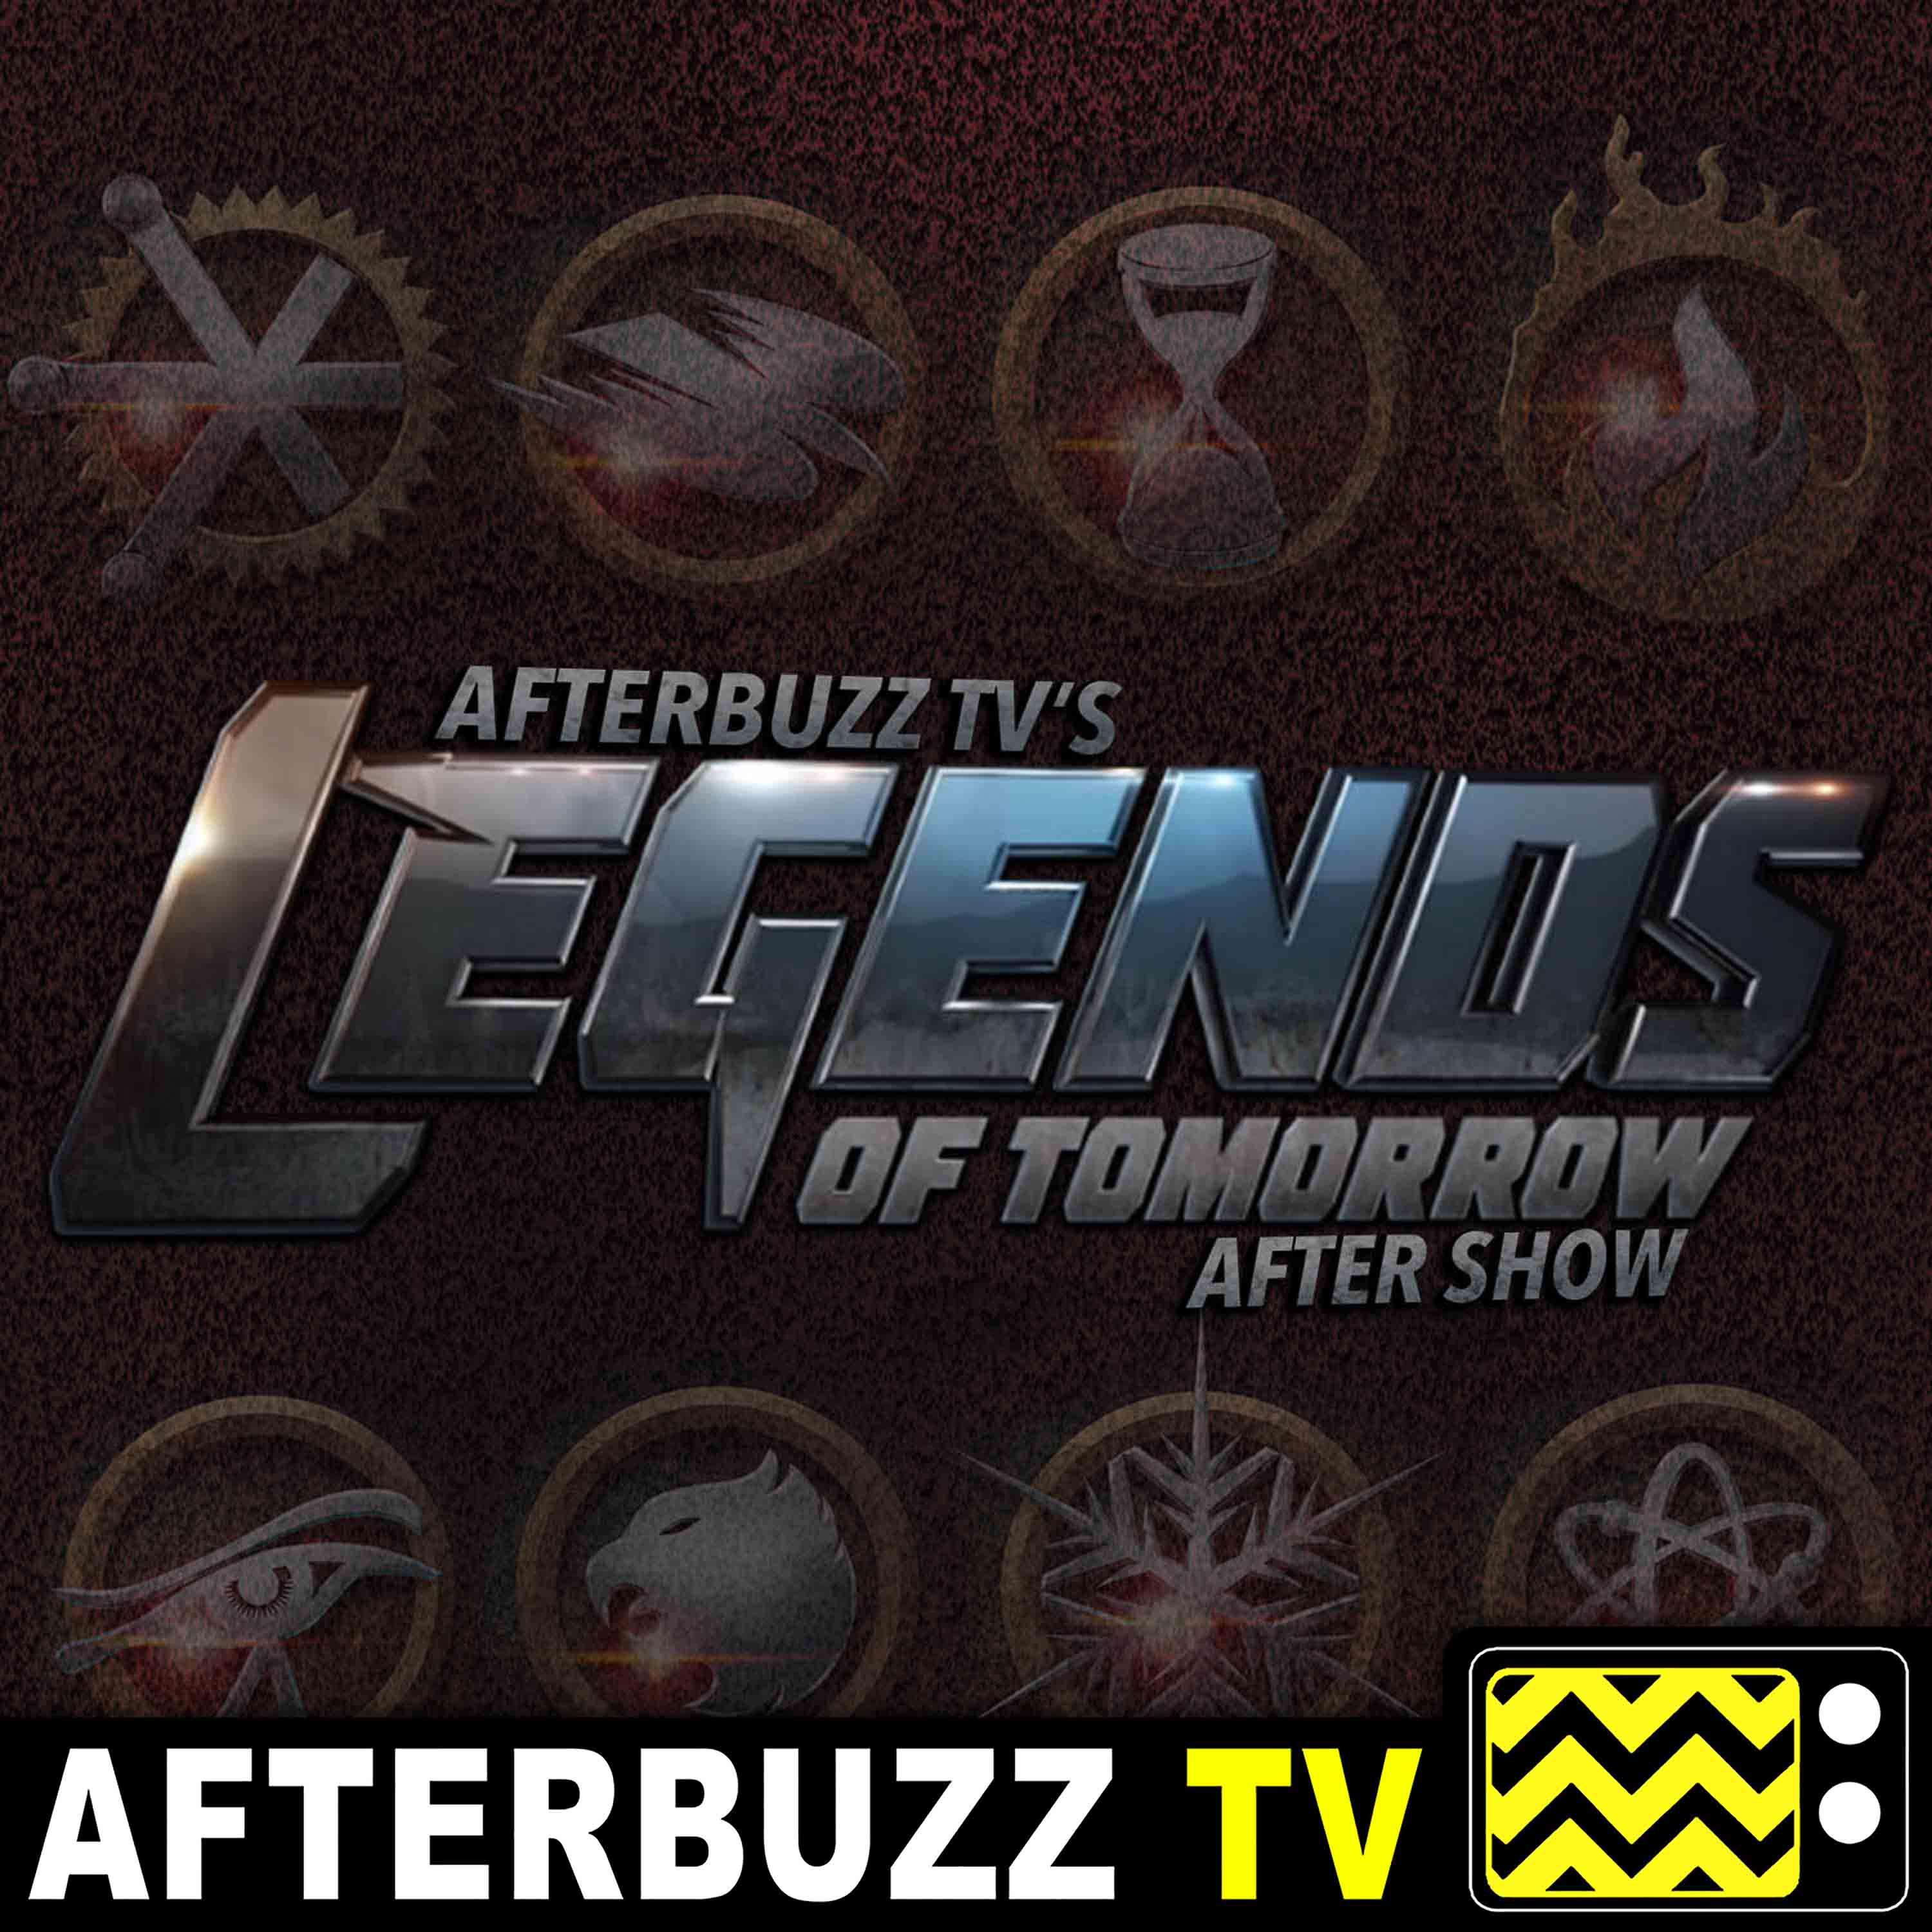 Legends of Tomorrow Reviews and After Show